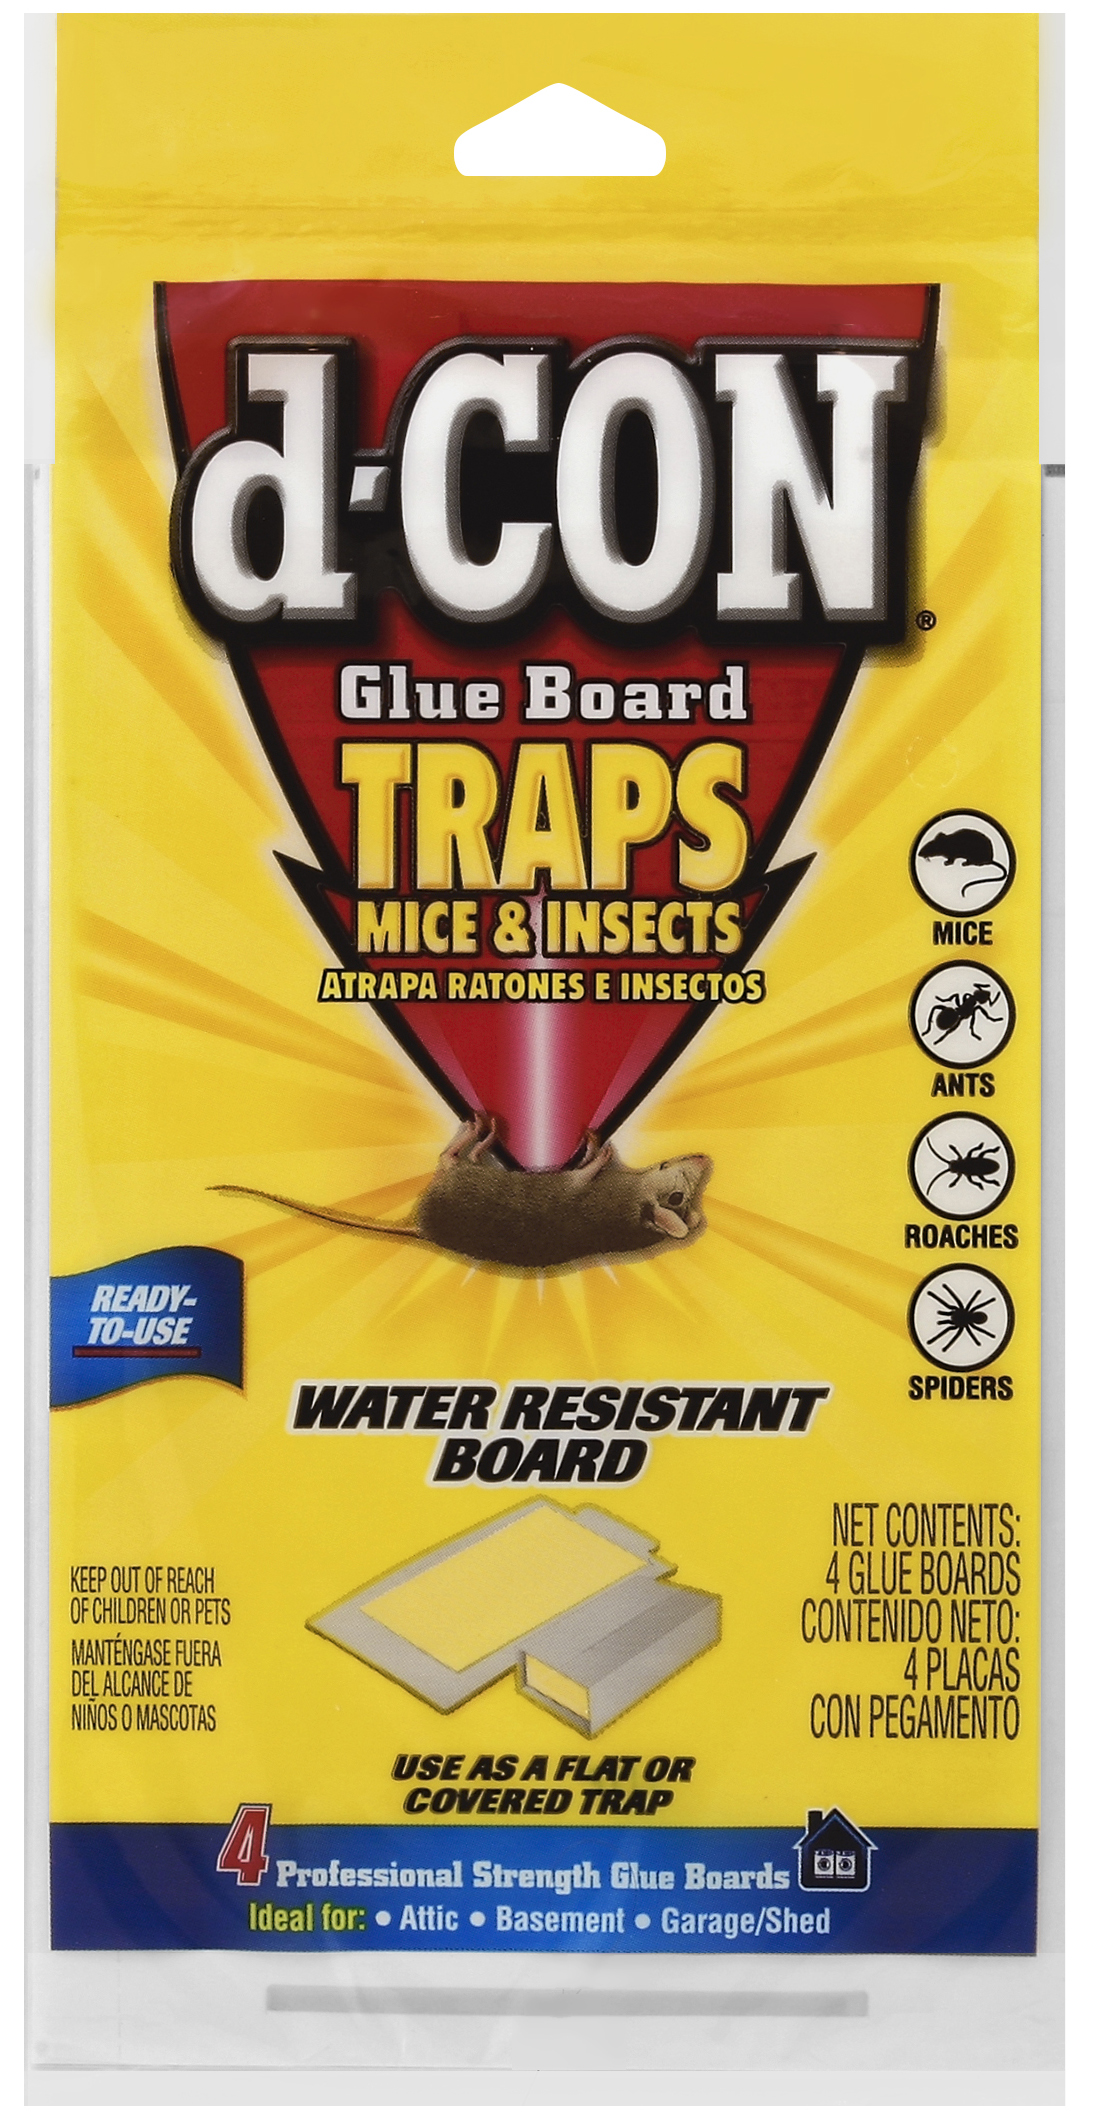 d-CON® Glue Board Traps Mice & Insects